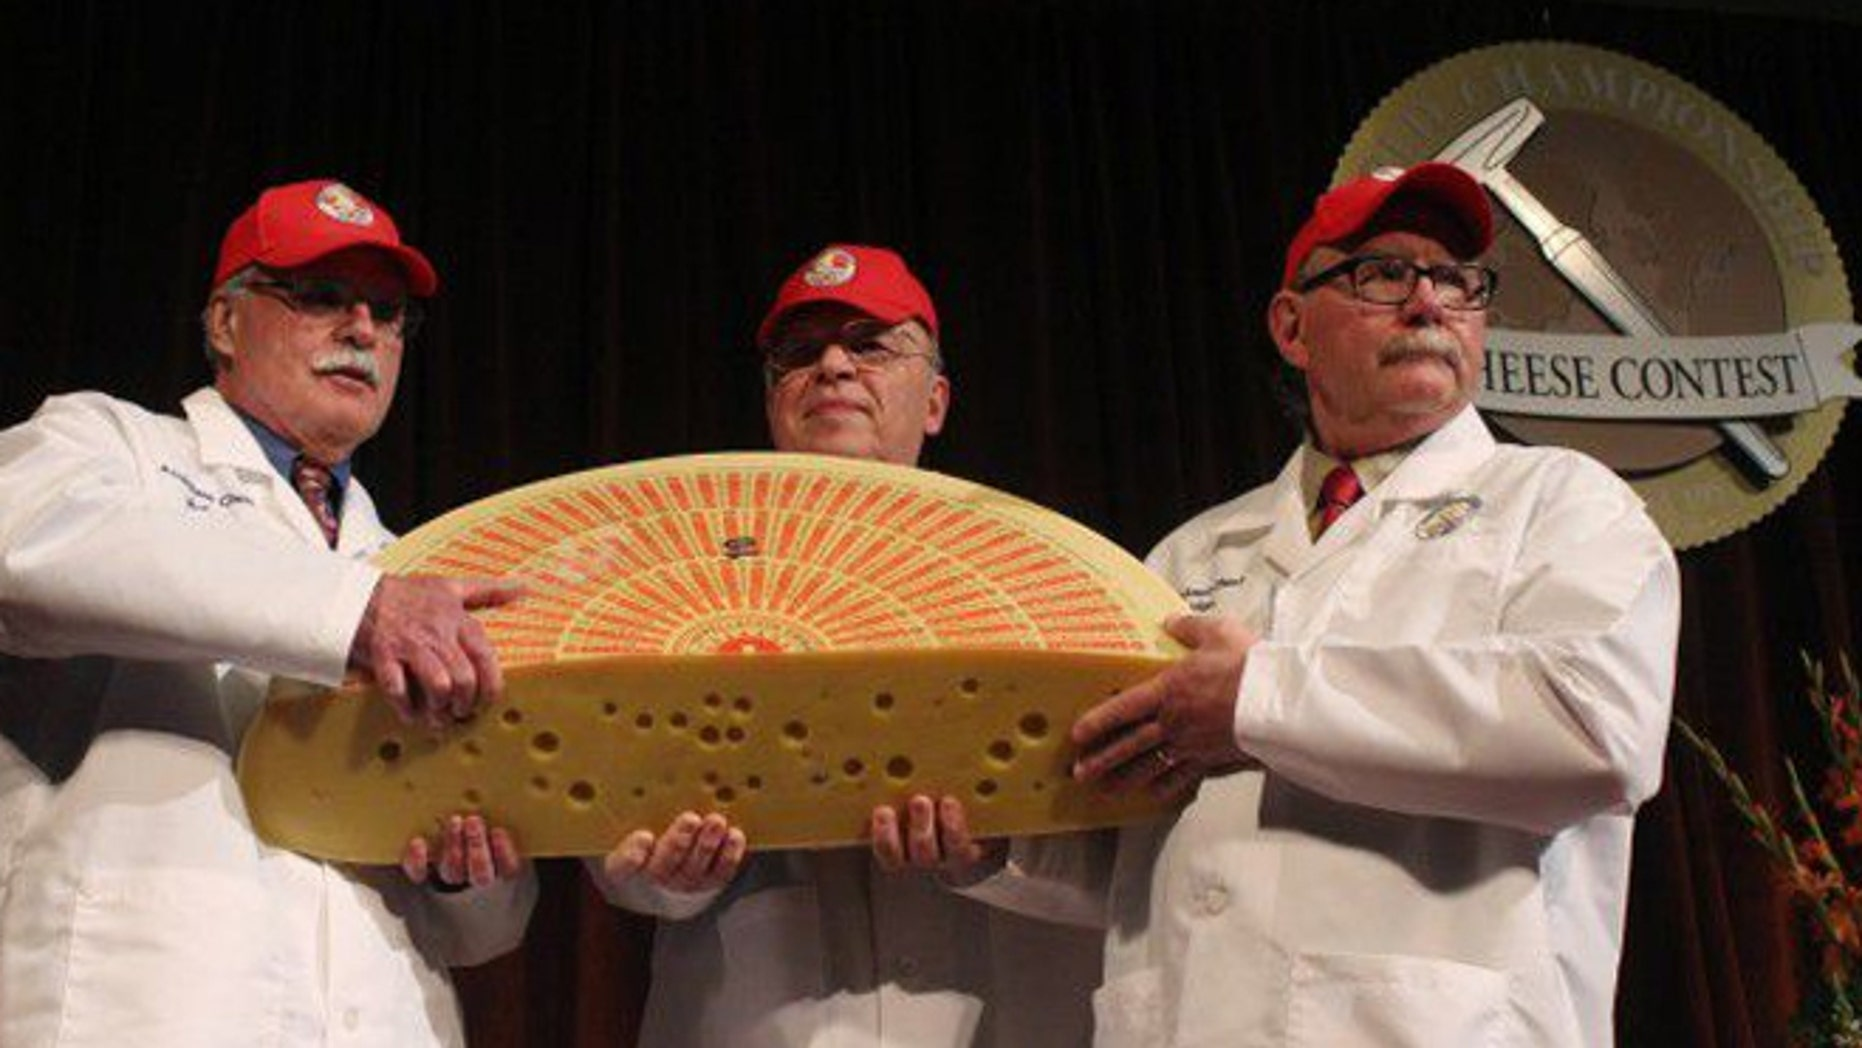 March 19, 2014: Three judges for the 2014 World Championship Cheese Contest hold the champion, a Swiss Emmentaler.